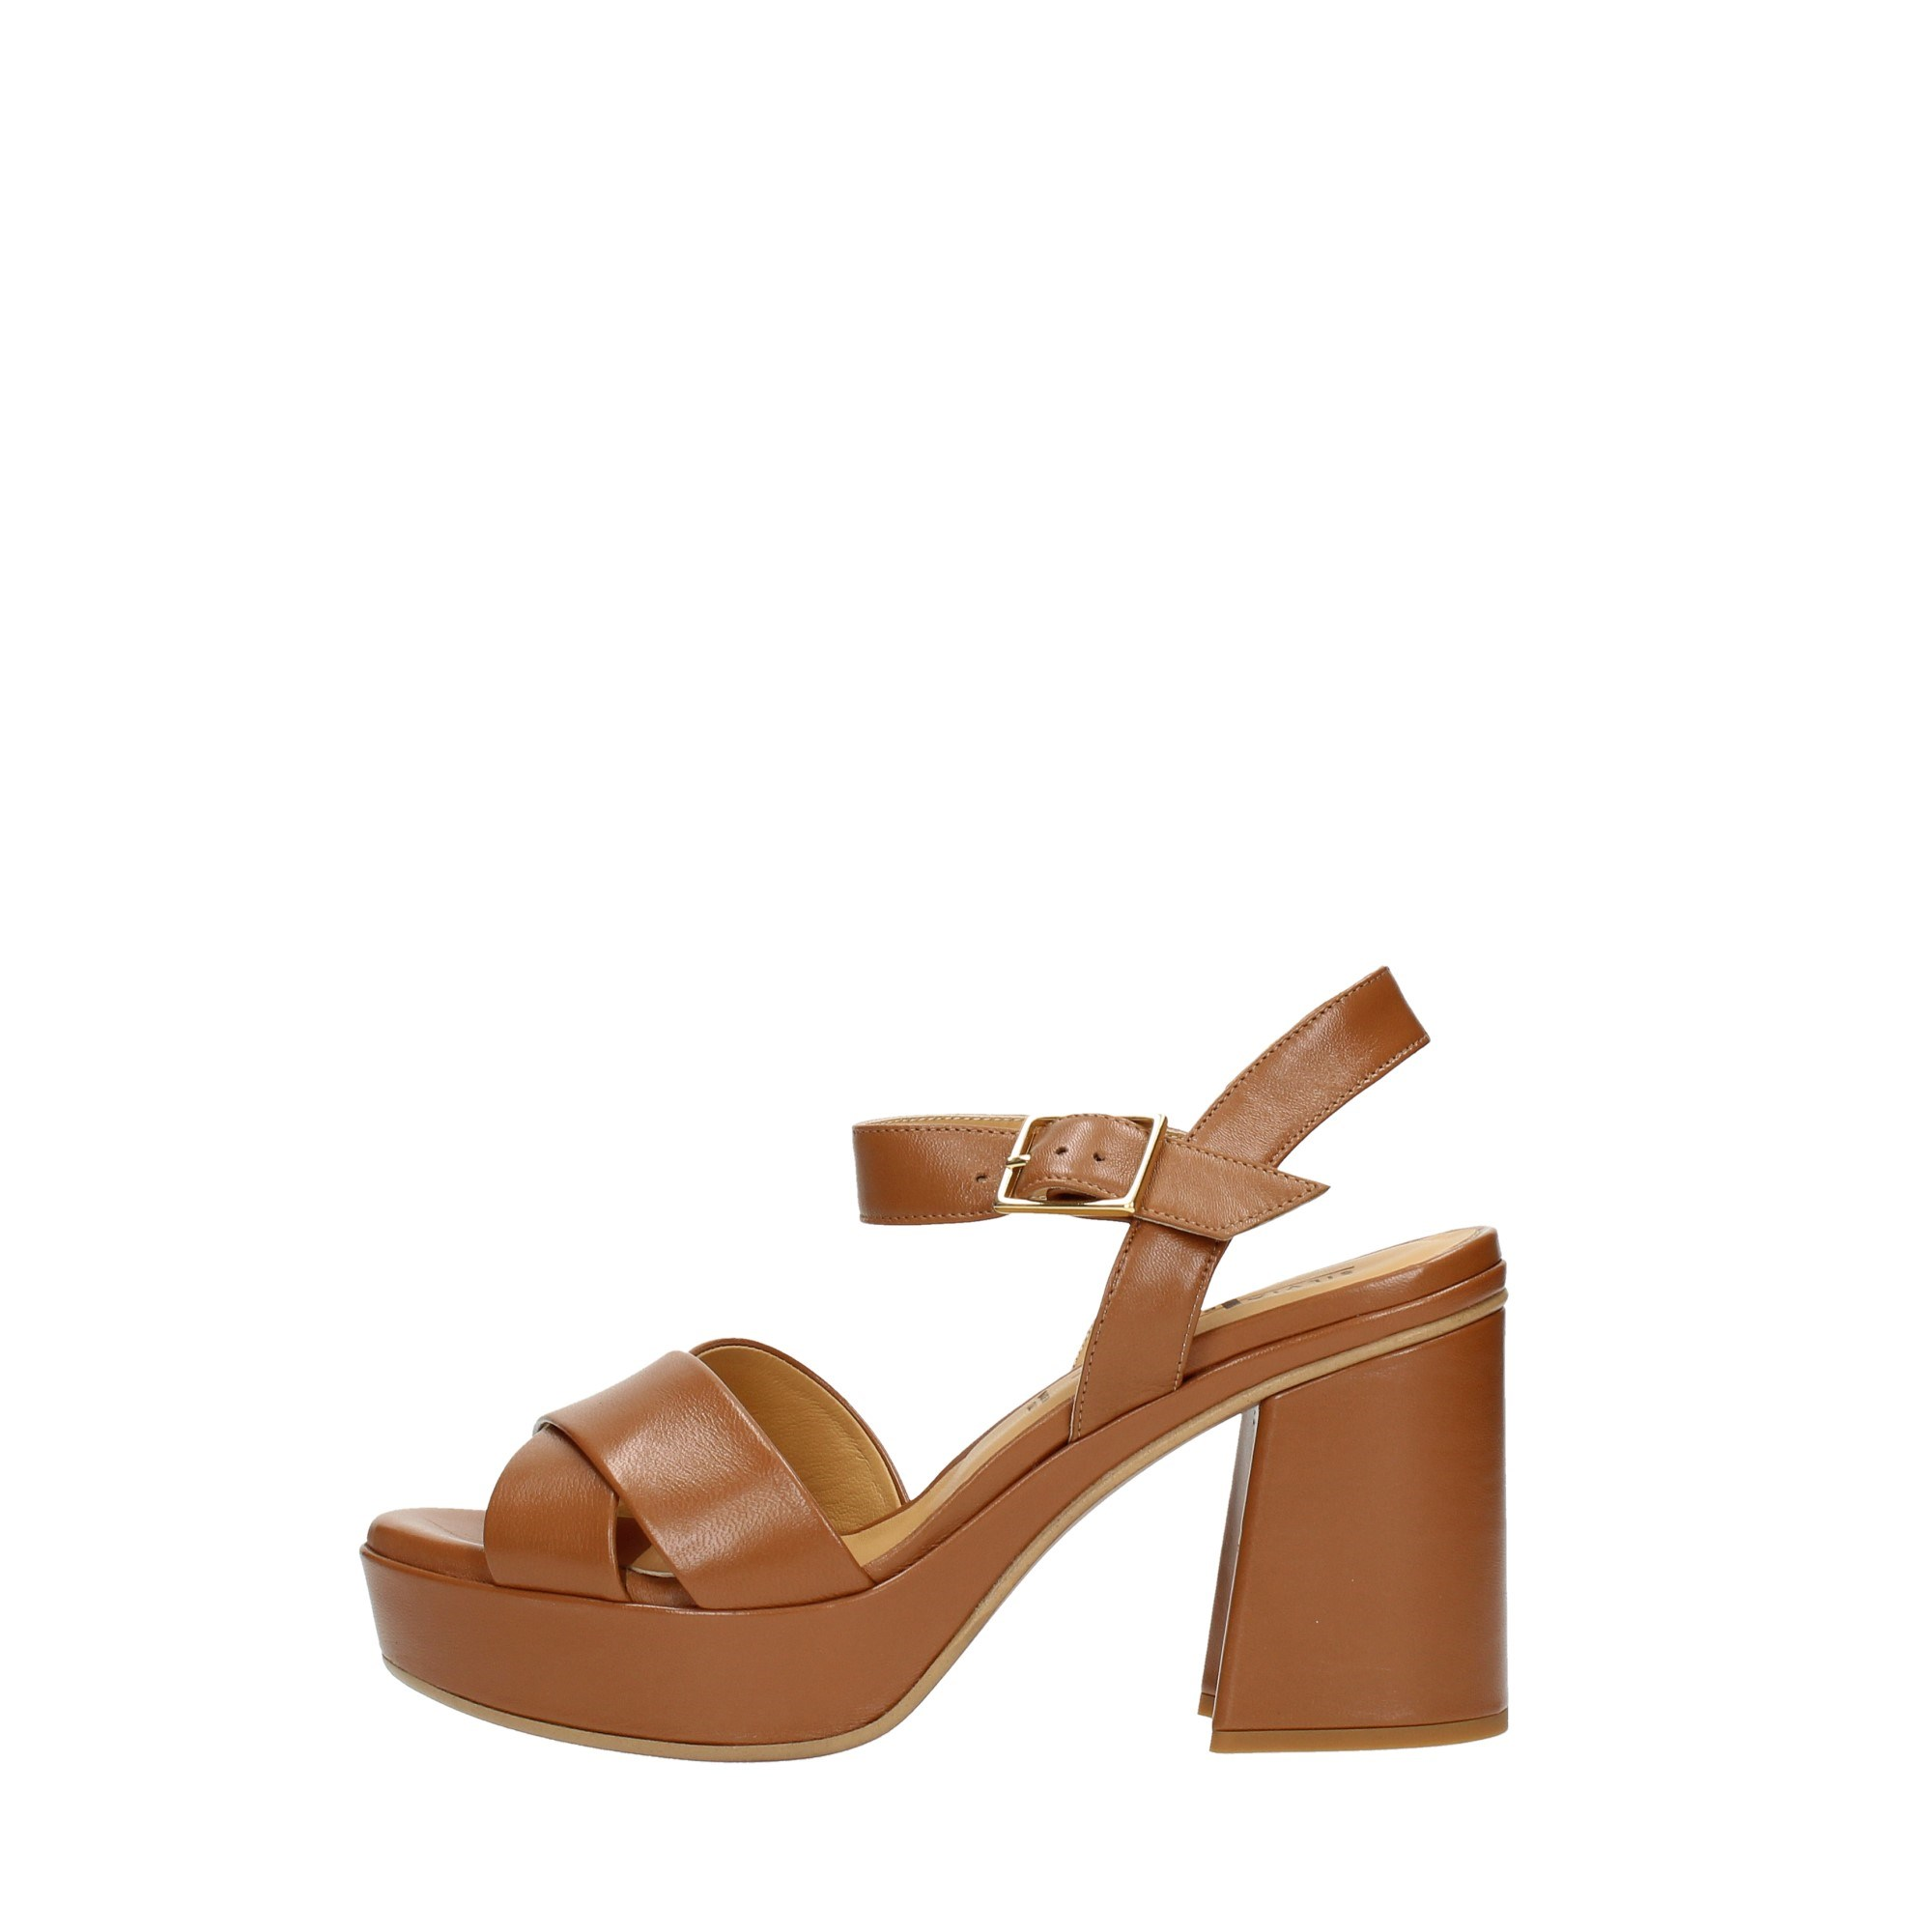 Silvia Rossini Shoes Women Sandals Leather SR22